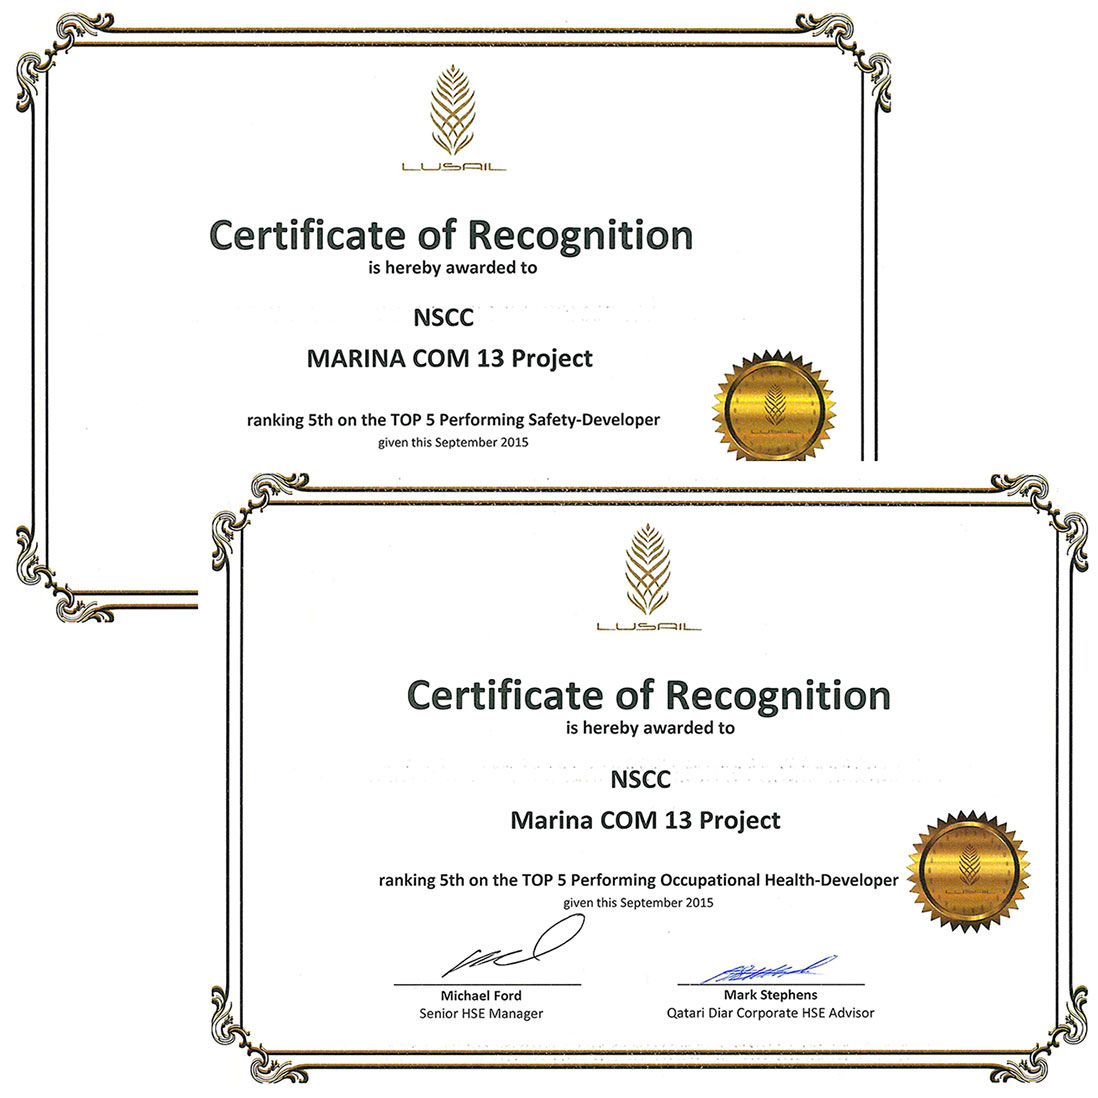 NSCC International Doha Awarded Top 5 Ranking for Health & Safety